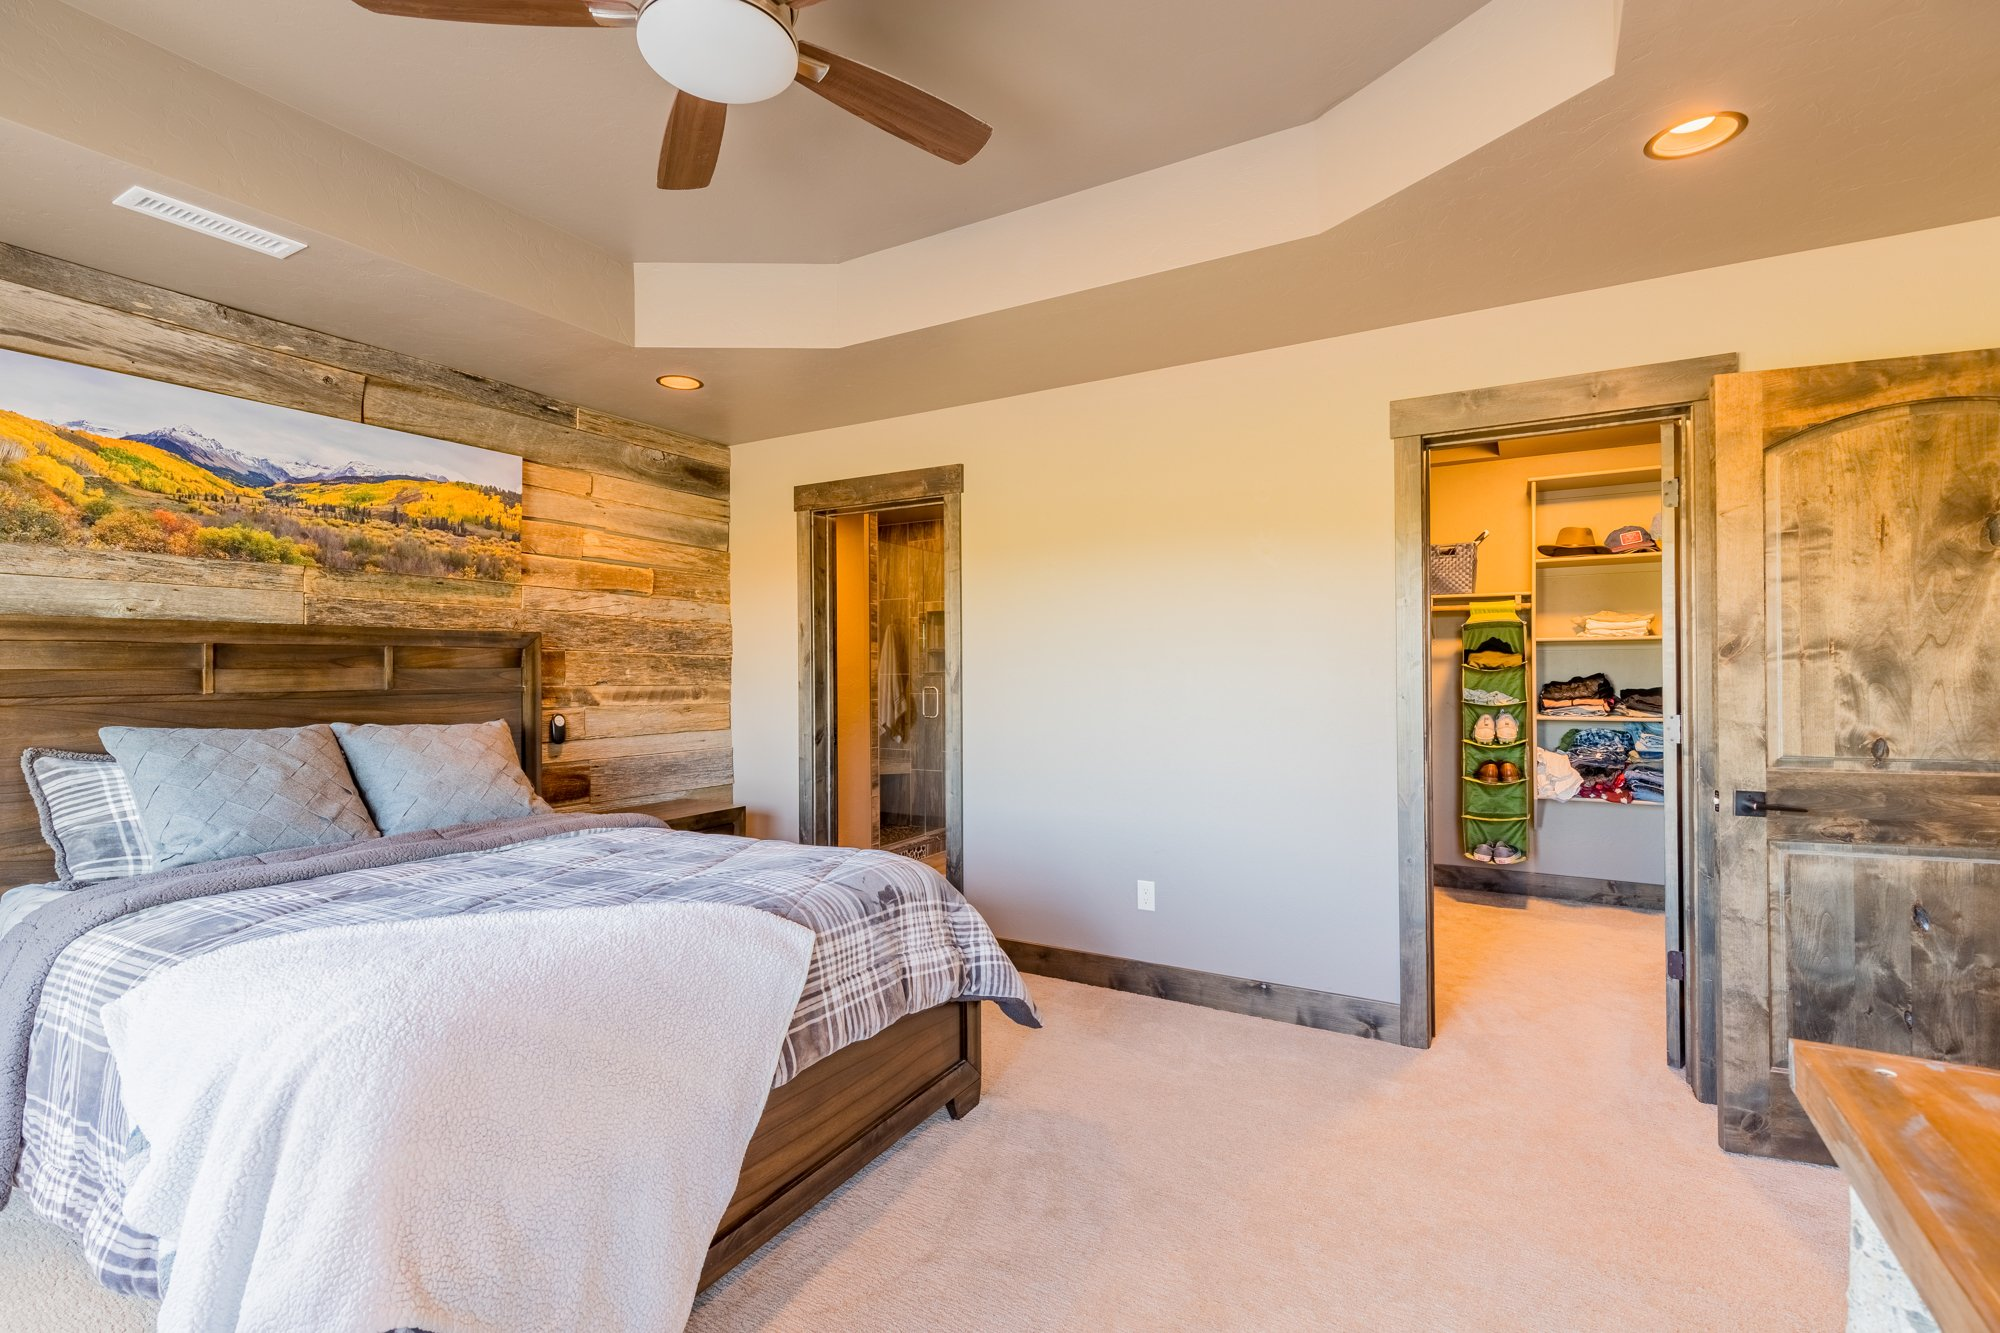 Bedroom with Carpet - 15067 6140 Ln Montrose, CO 81403 - Atha Team Luxury Real Estate